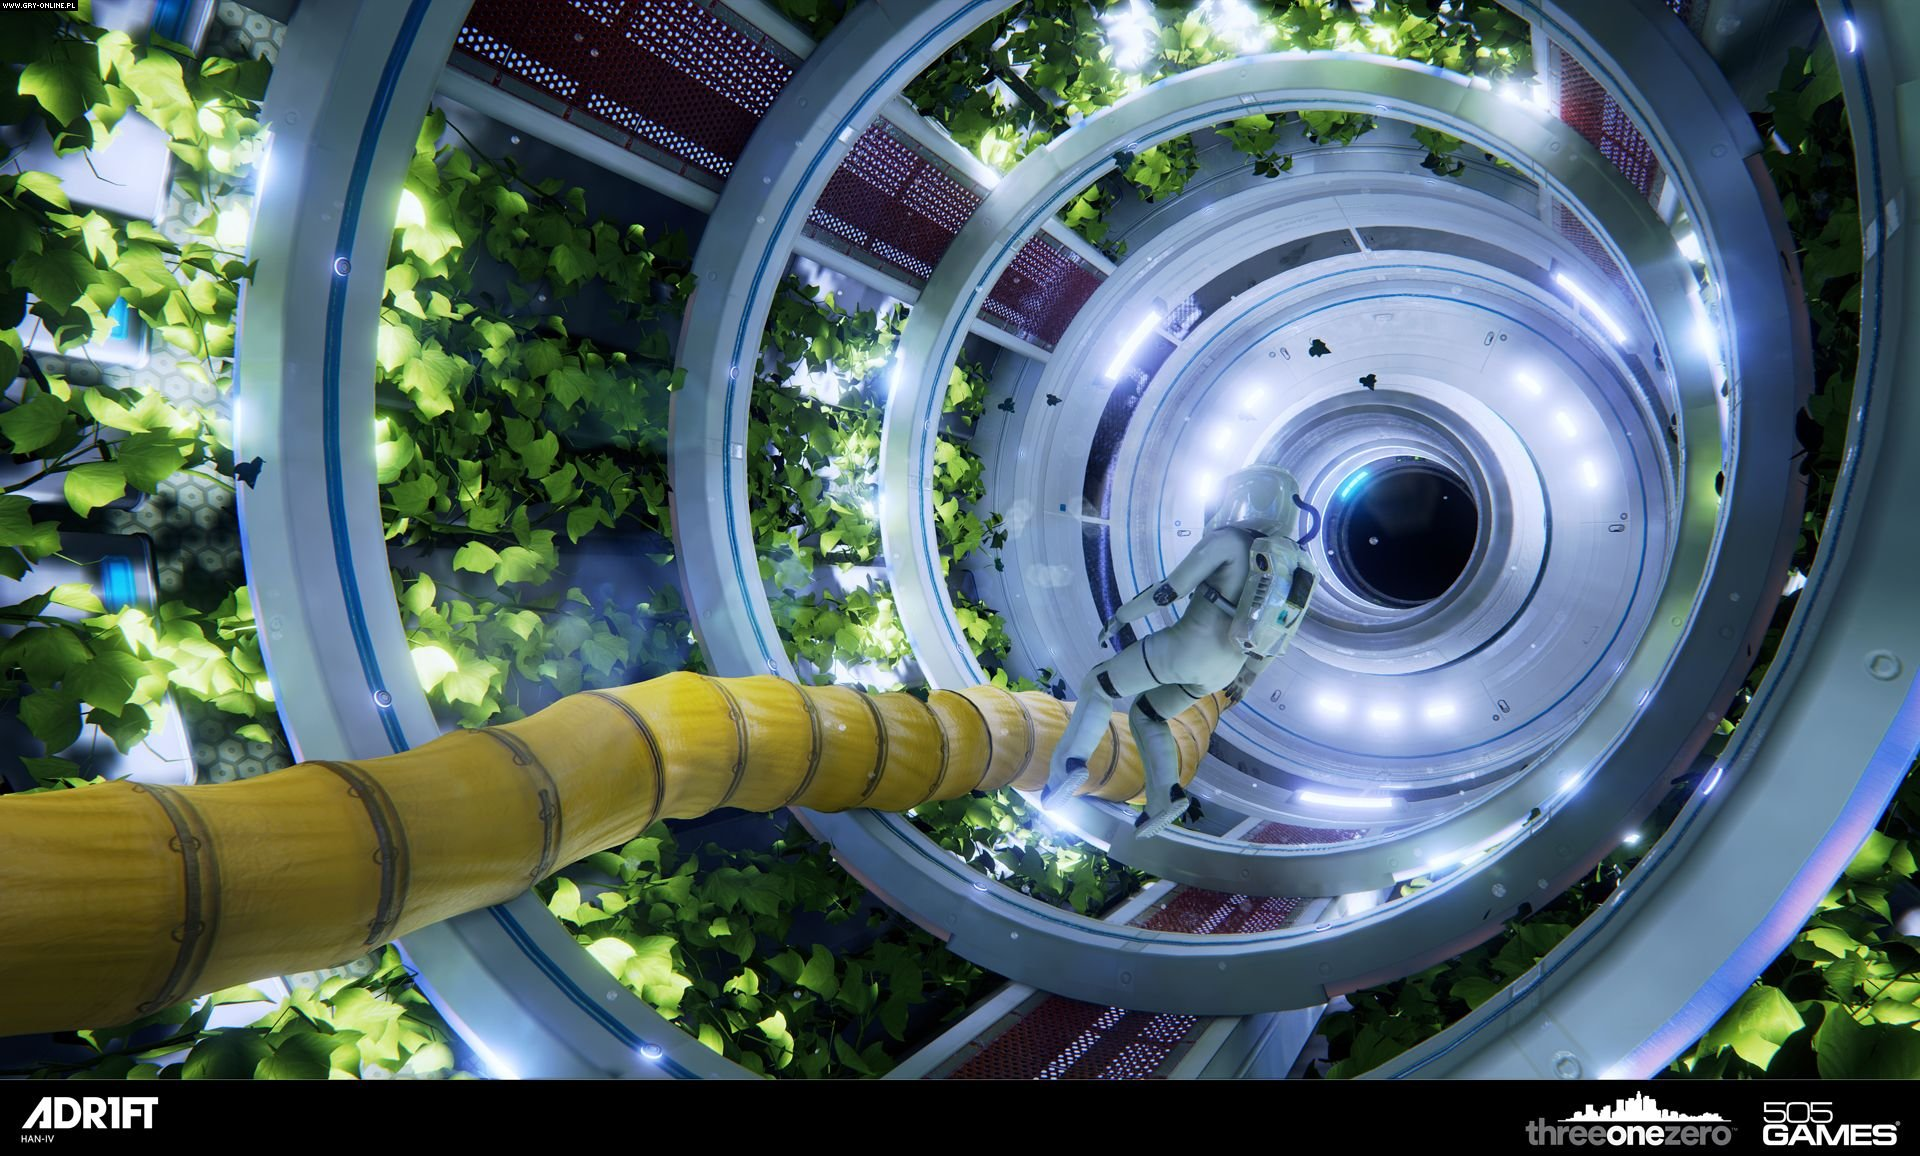 Adr1ft PC, PS4, XONE Gry Screen 14/22, Three One Zero, 505 Games